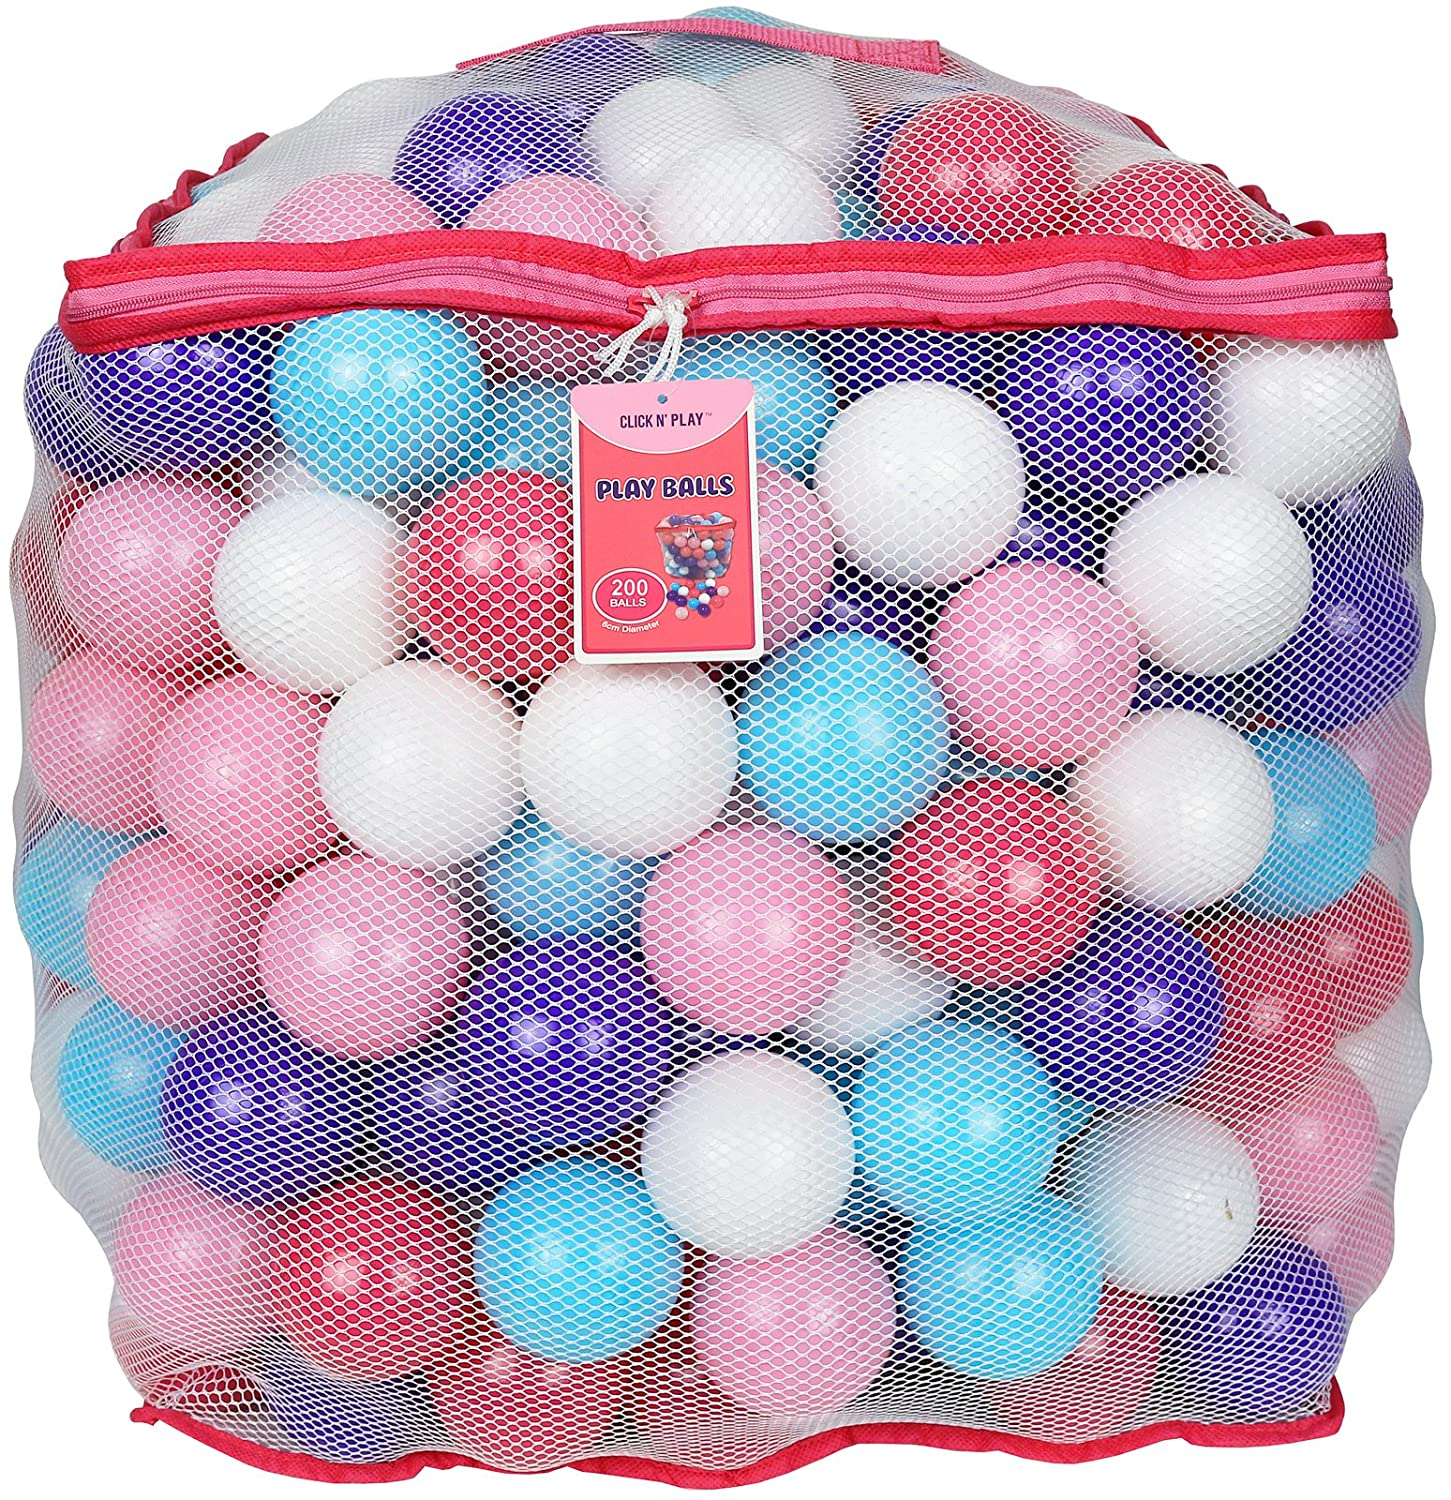 "Click N' Play Value Pack of 200 Crush Proof Plastic Play Balls, Phthalate Free BPA Free, 5 Pretty Feminine Colors in Reusable Mesh Storage Bag with Zipper-""LITTLE PRINCESS EDITION"""